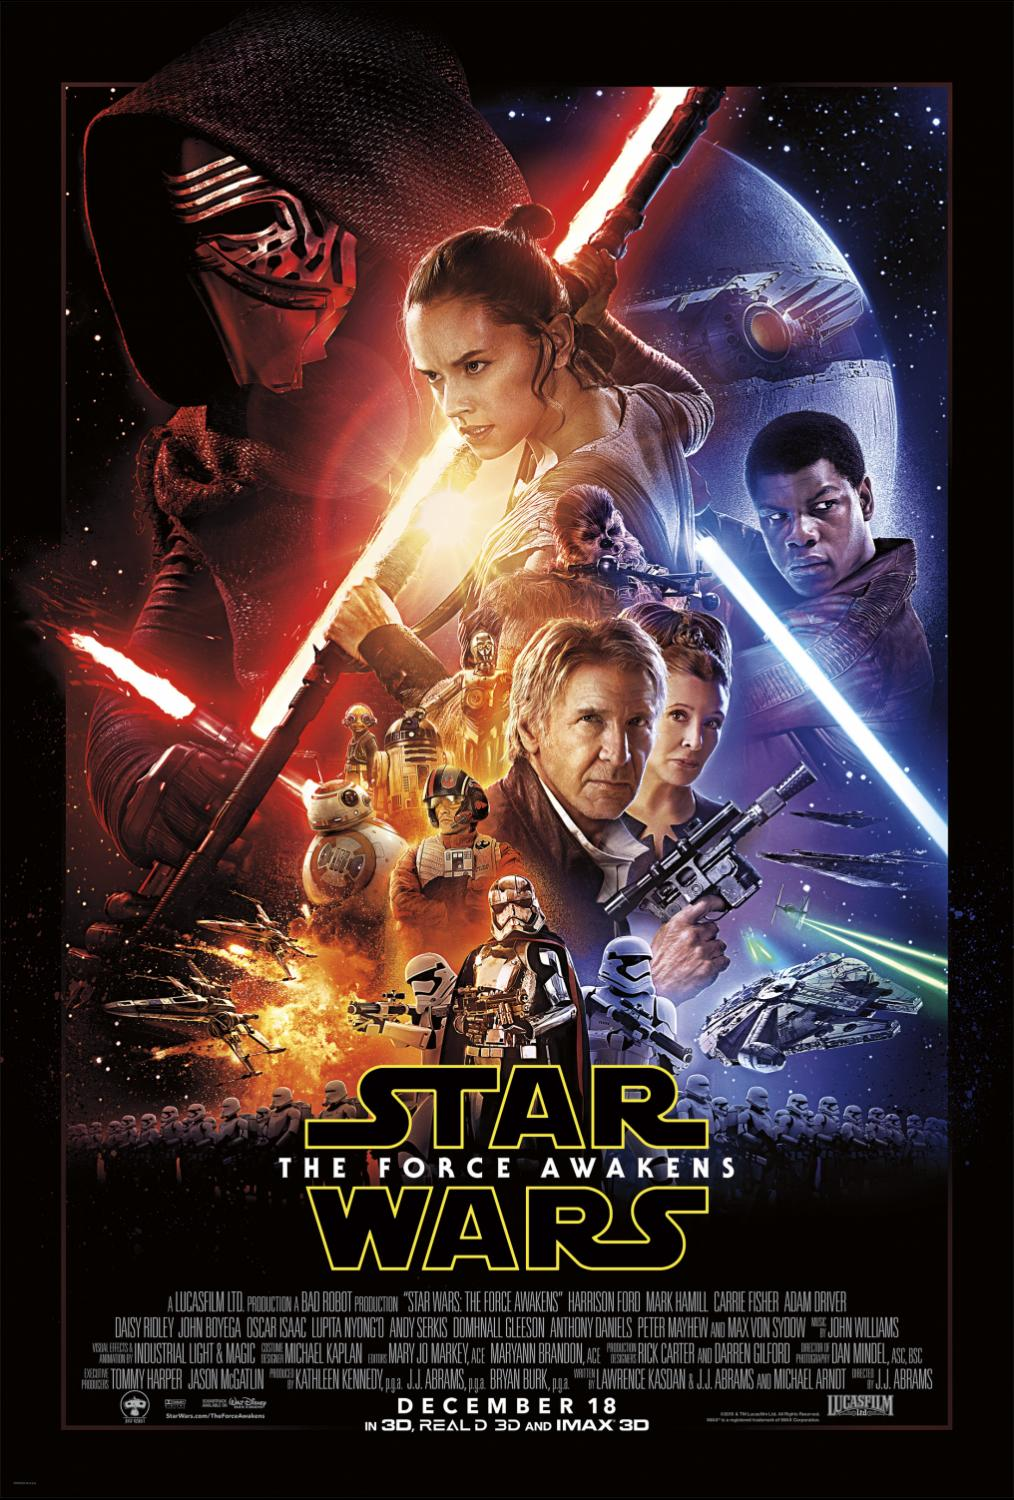 Star Wars: The Force Awakens Continues to Pass Box Office Milestones (Disney Release)